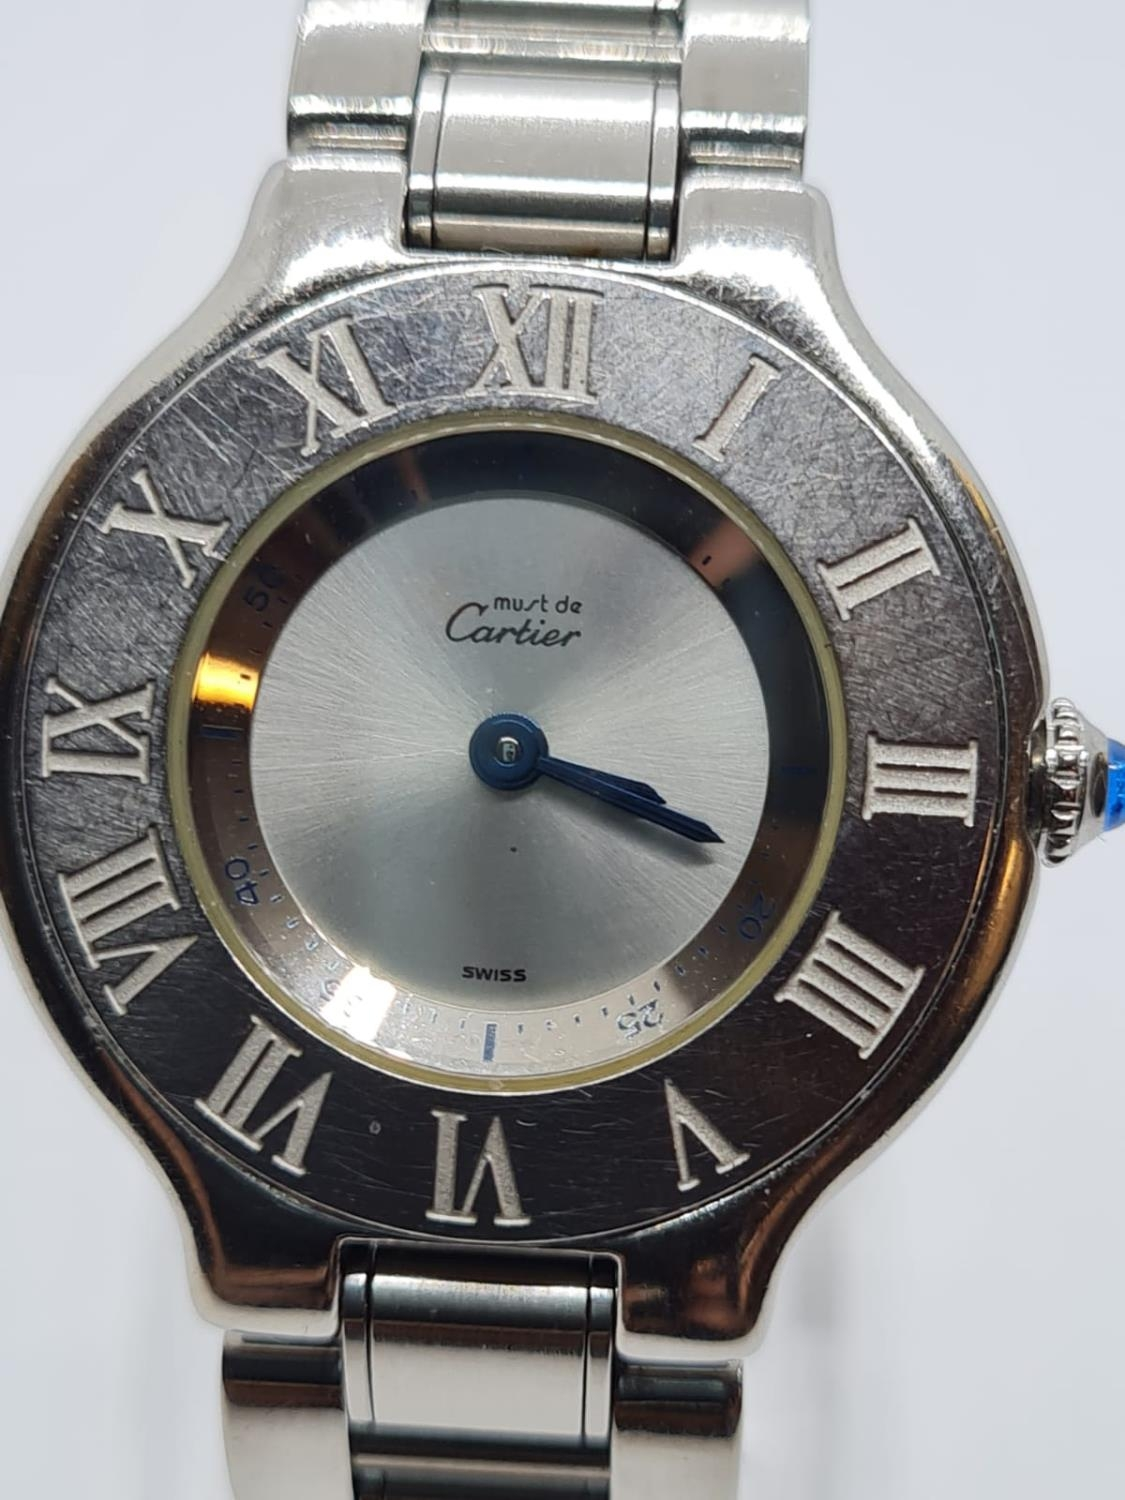 Must de Cartier Ladies WATCH with round face and Roman Numerals. 28mm case. - Image 2 of 5